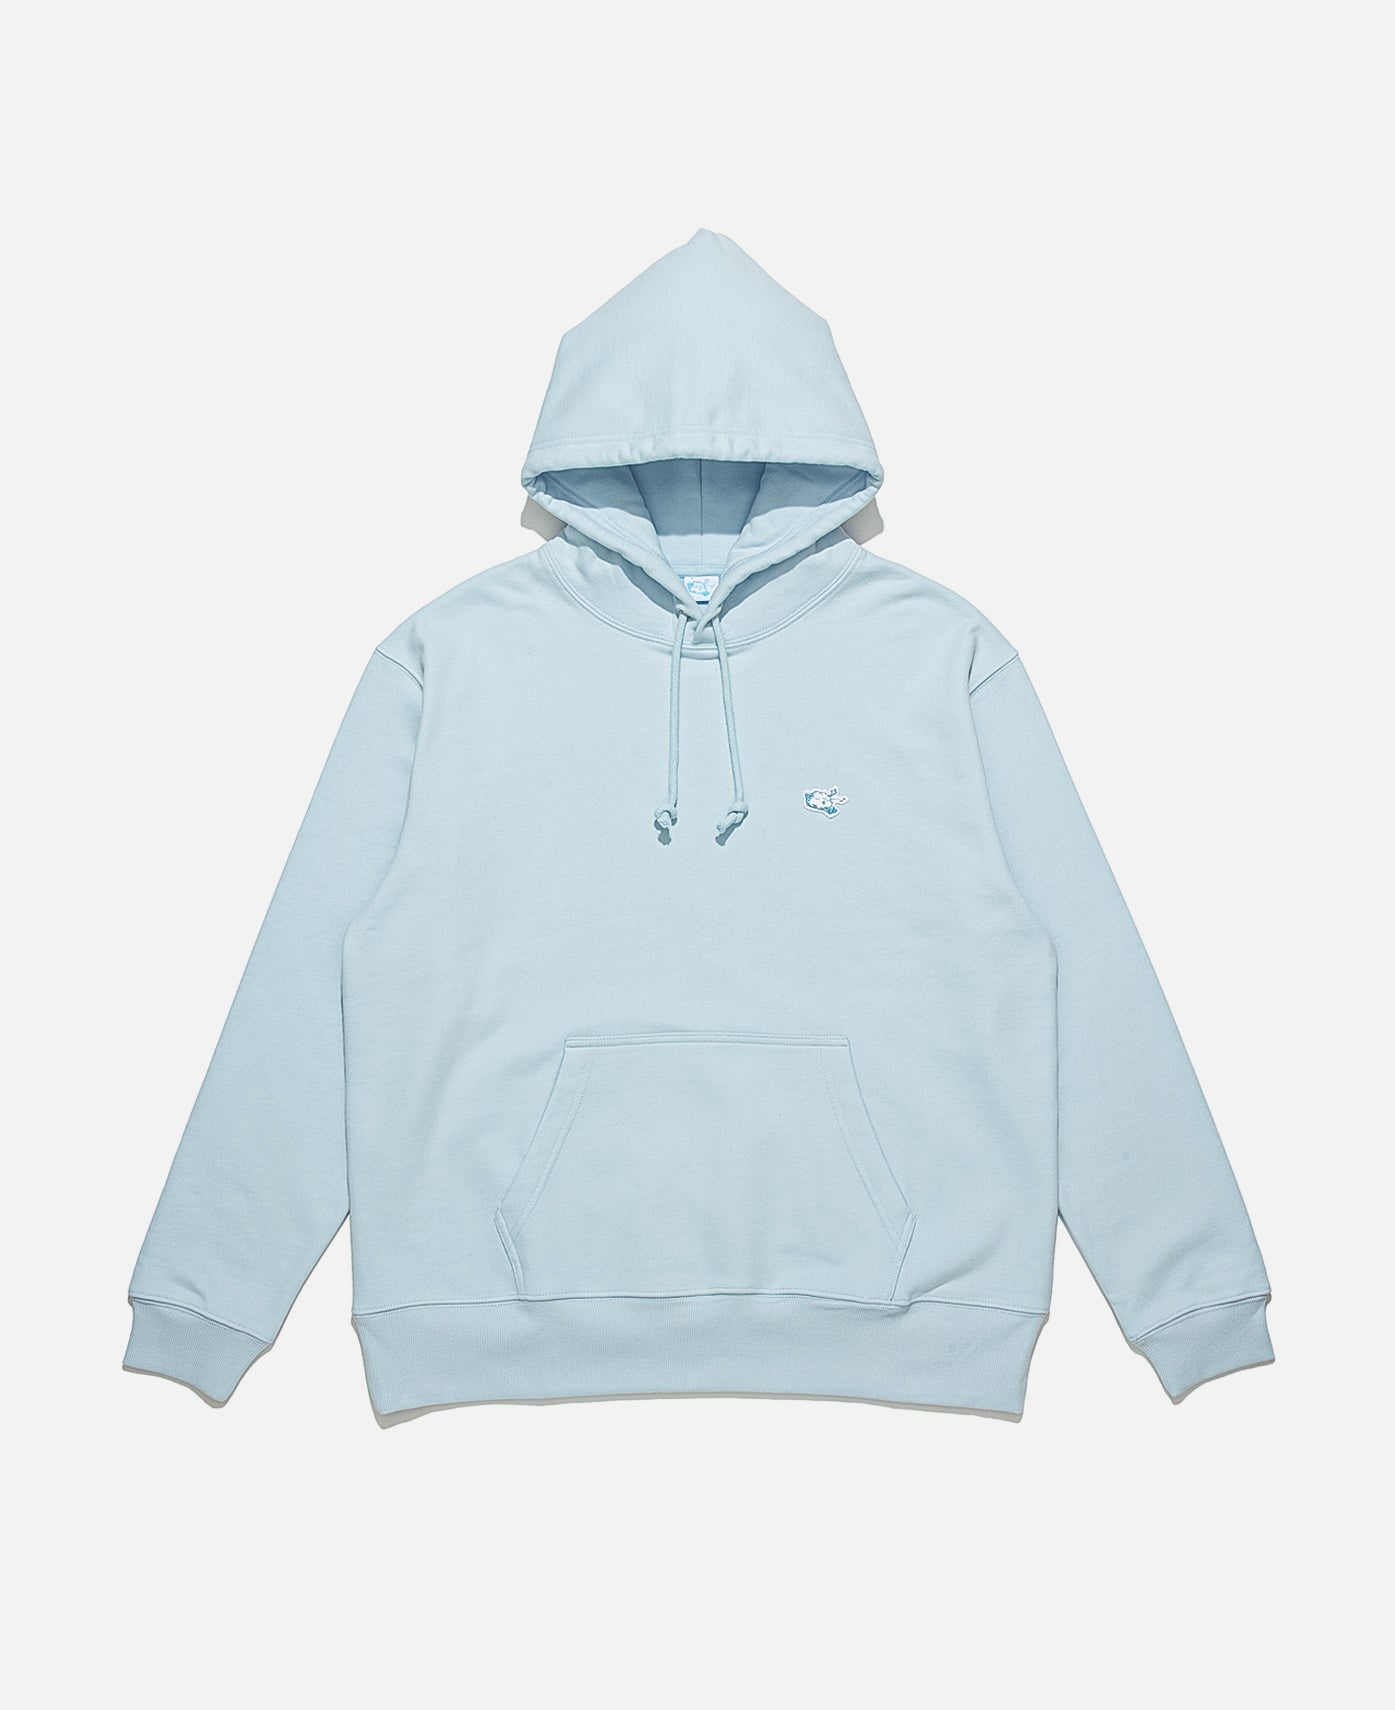 Cozy World Hoodie (Blue)